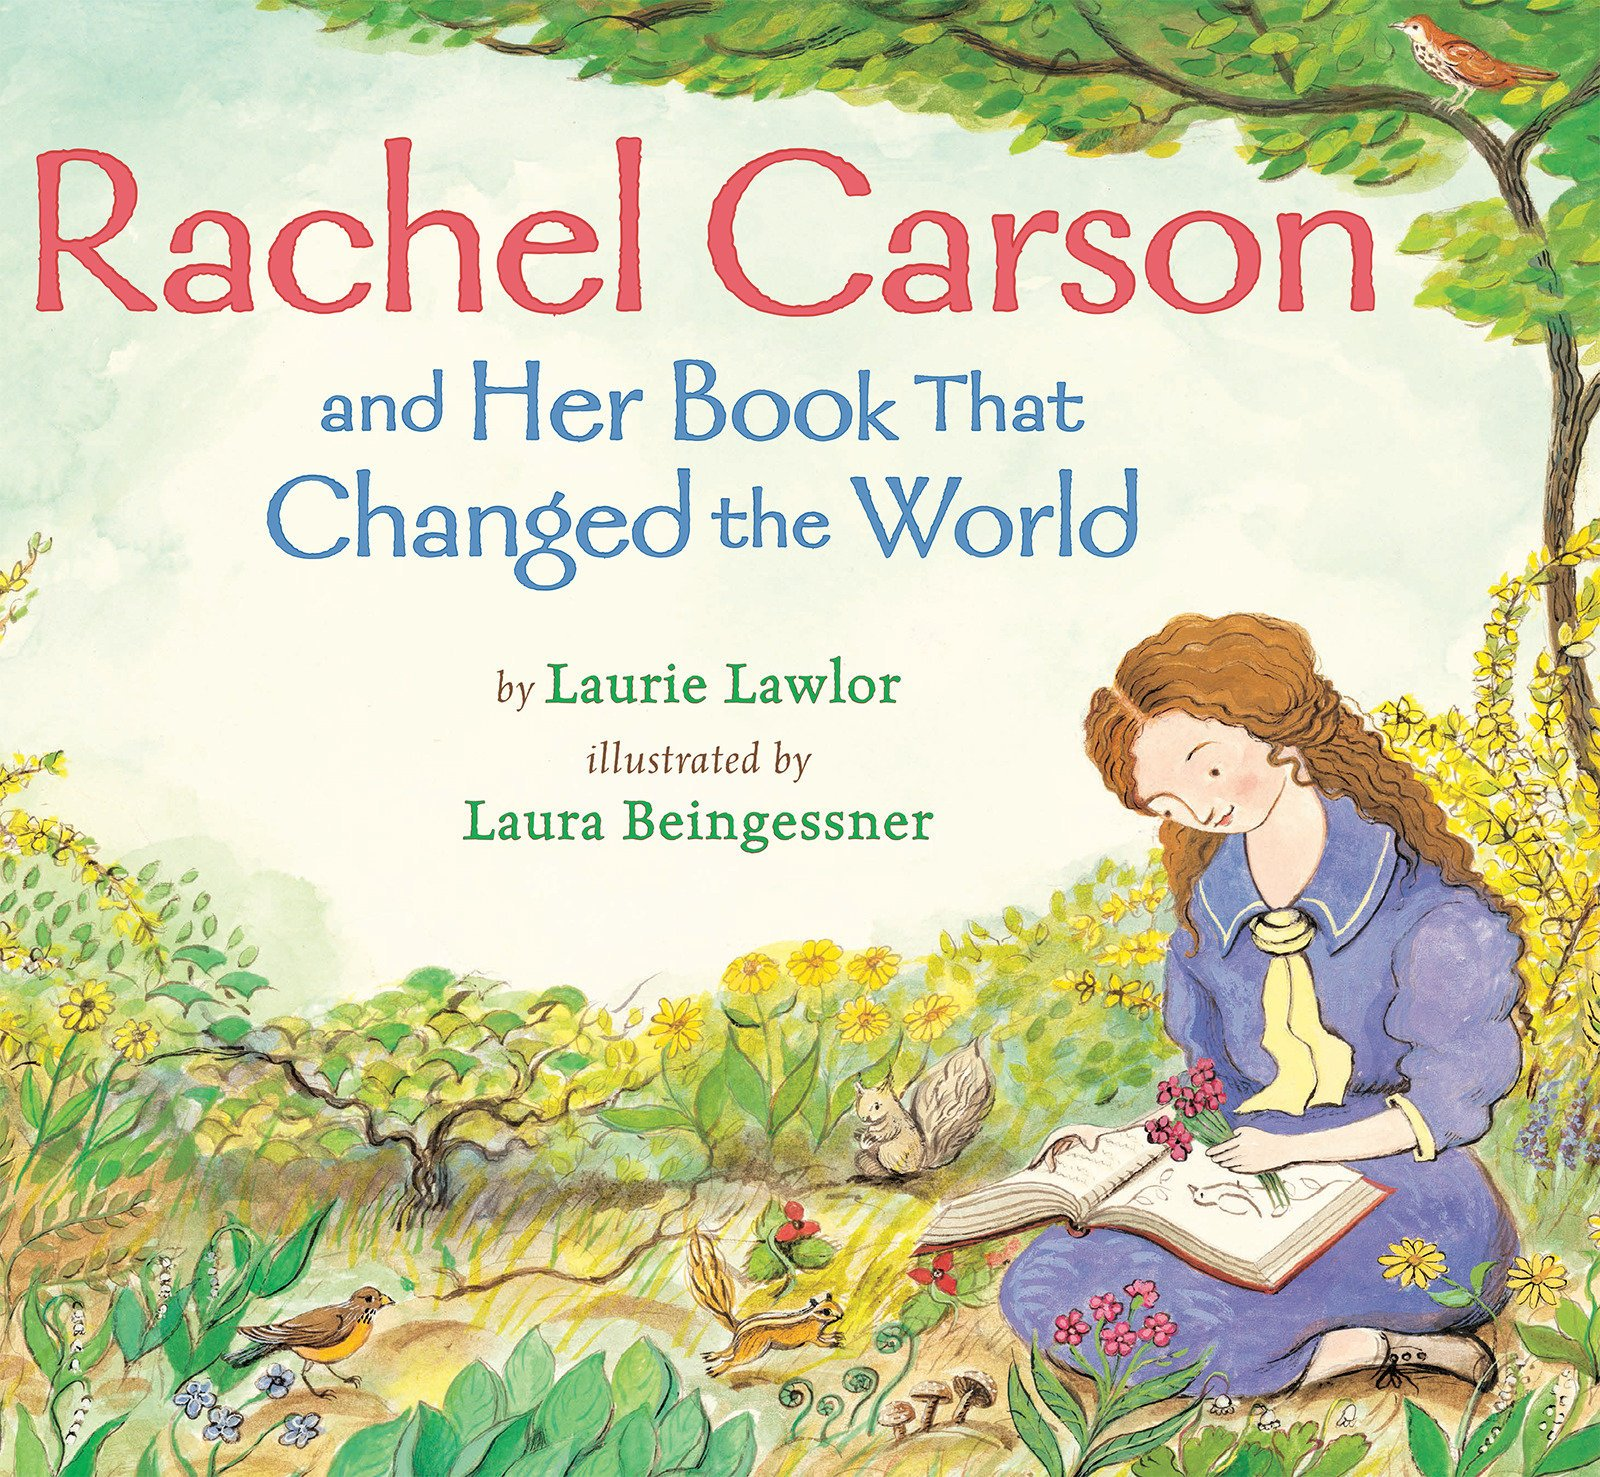 Rachel Carson and Her Book That Changed the World, by Laurie Lawlor